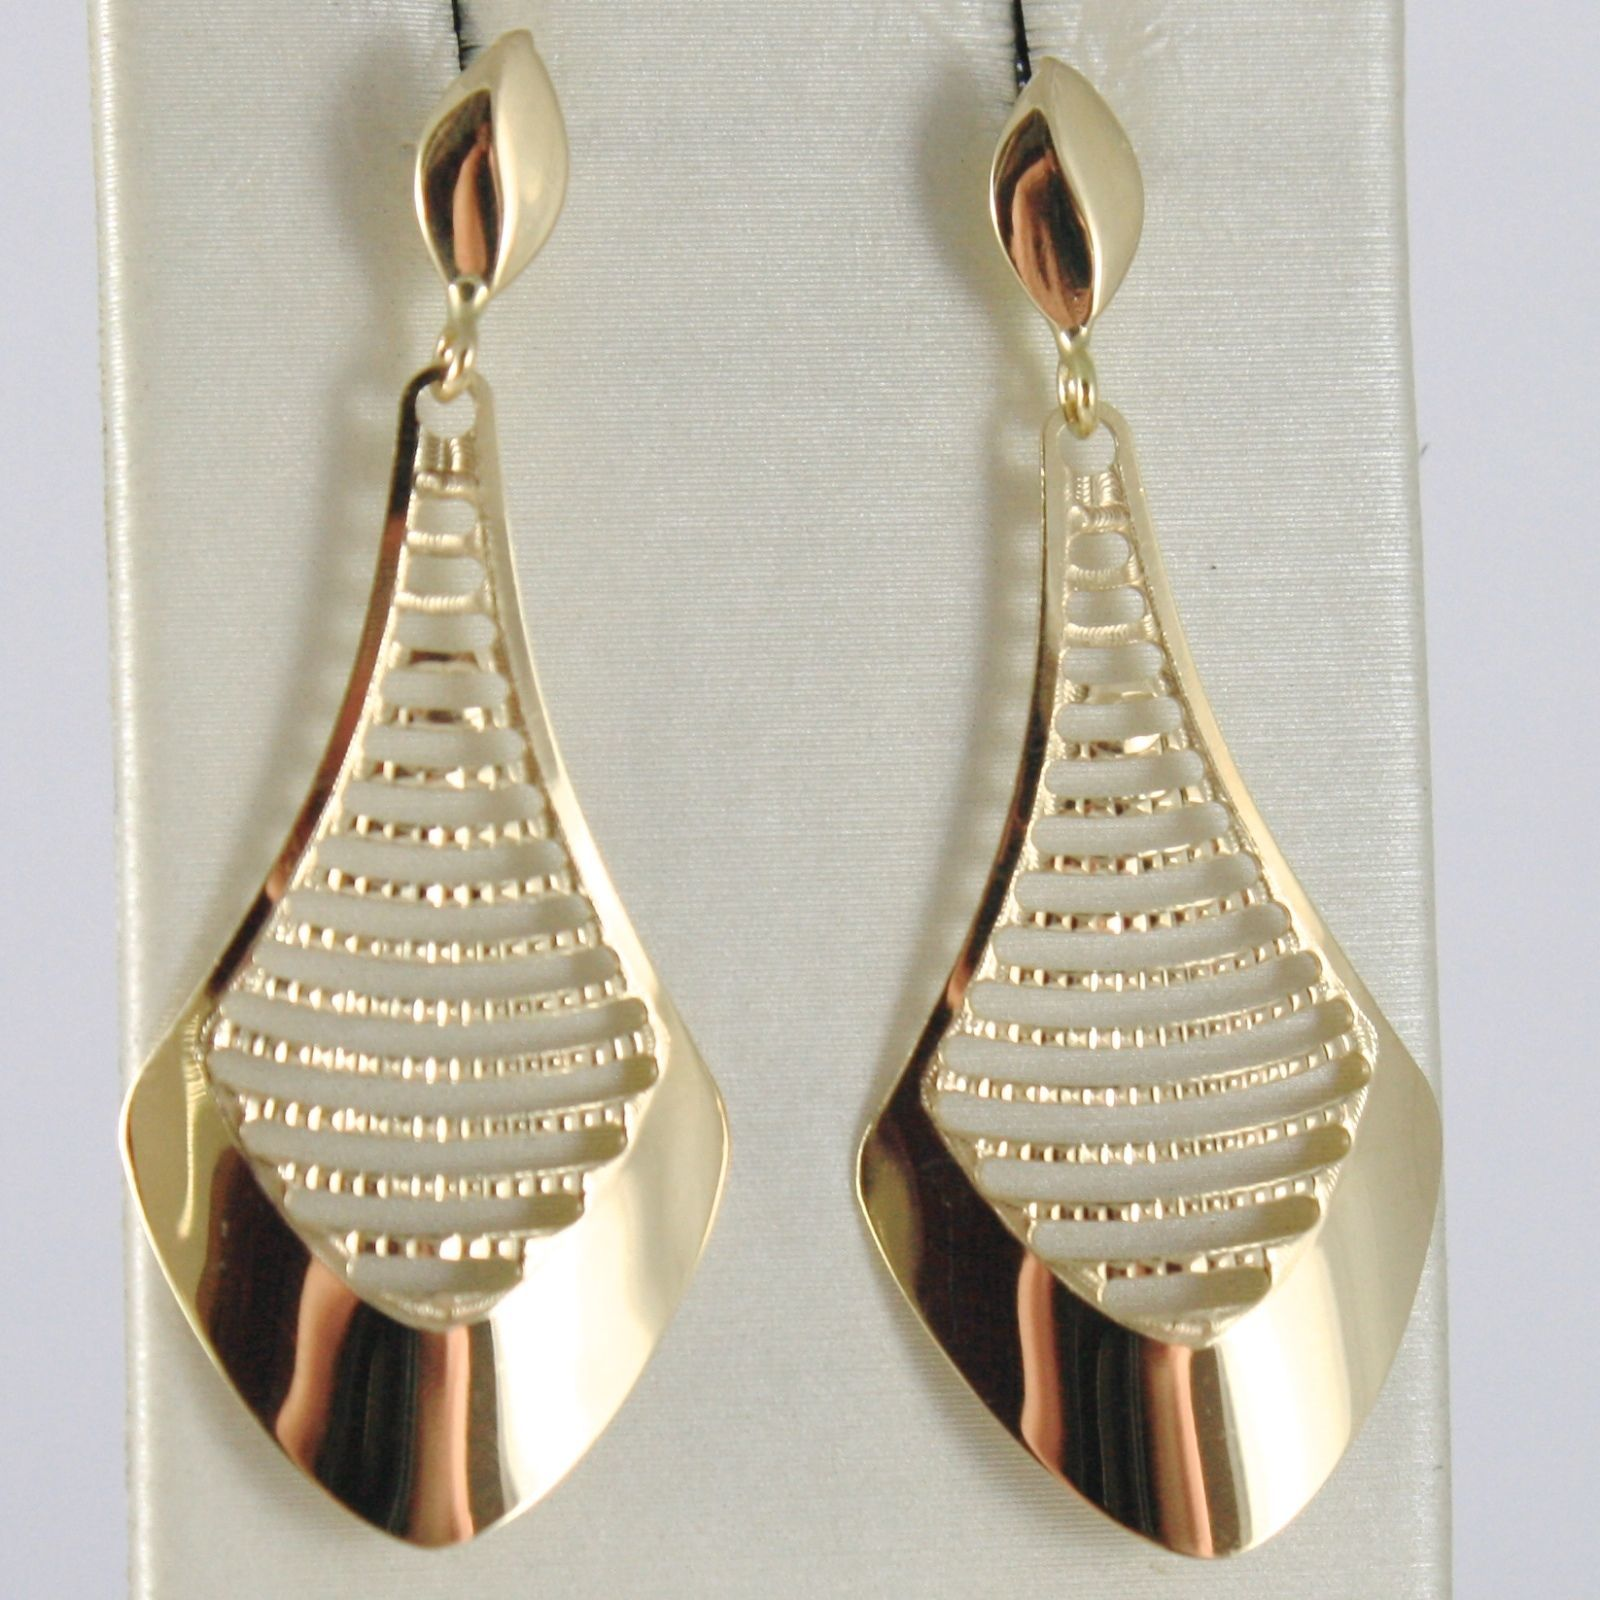 BOUCLES D'OREILLES OR JAUNE 750 18K PENDENTIFS GOUTTE BRODÉ 4 CM, MADE IN ITALY